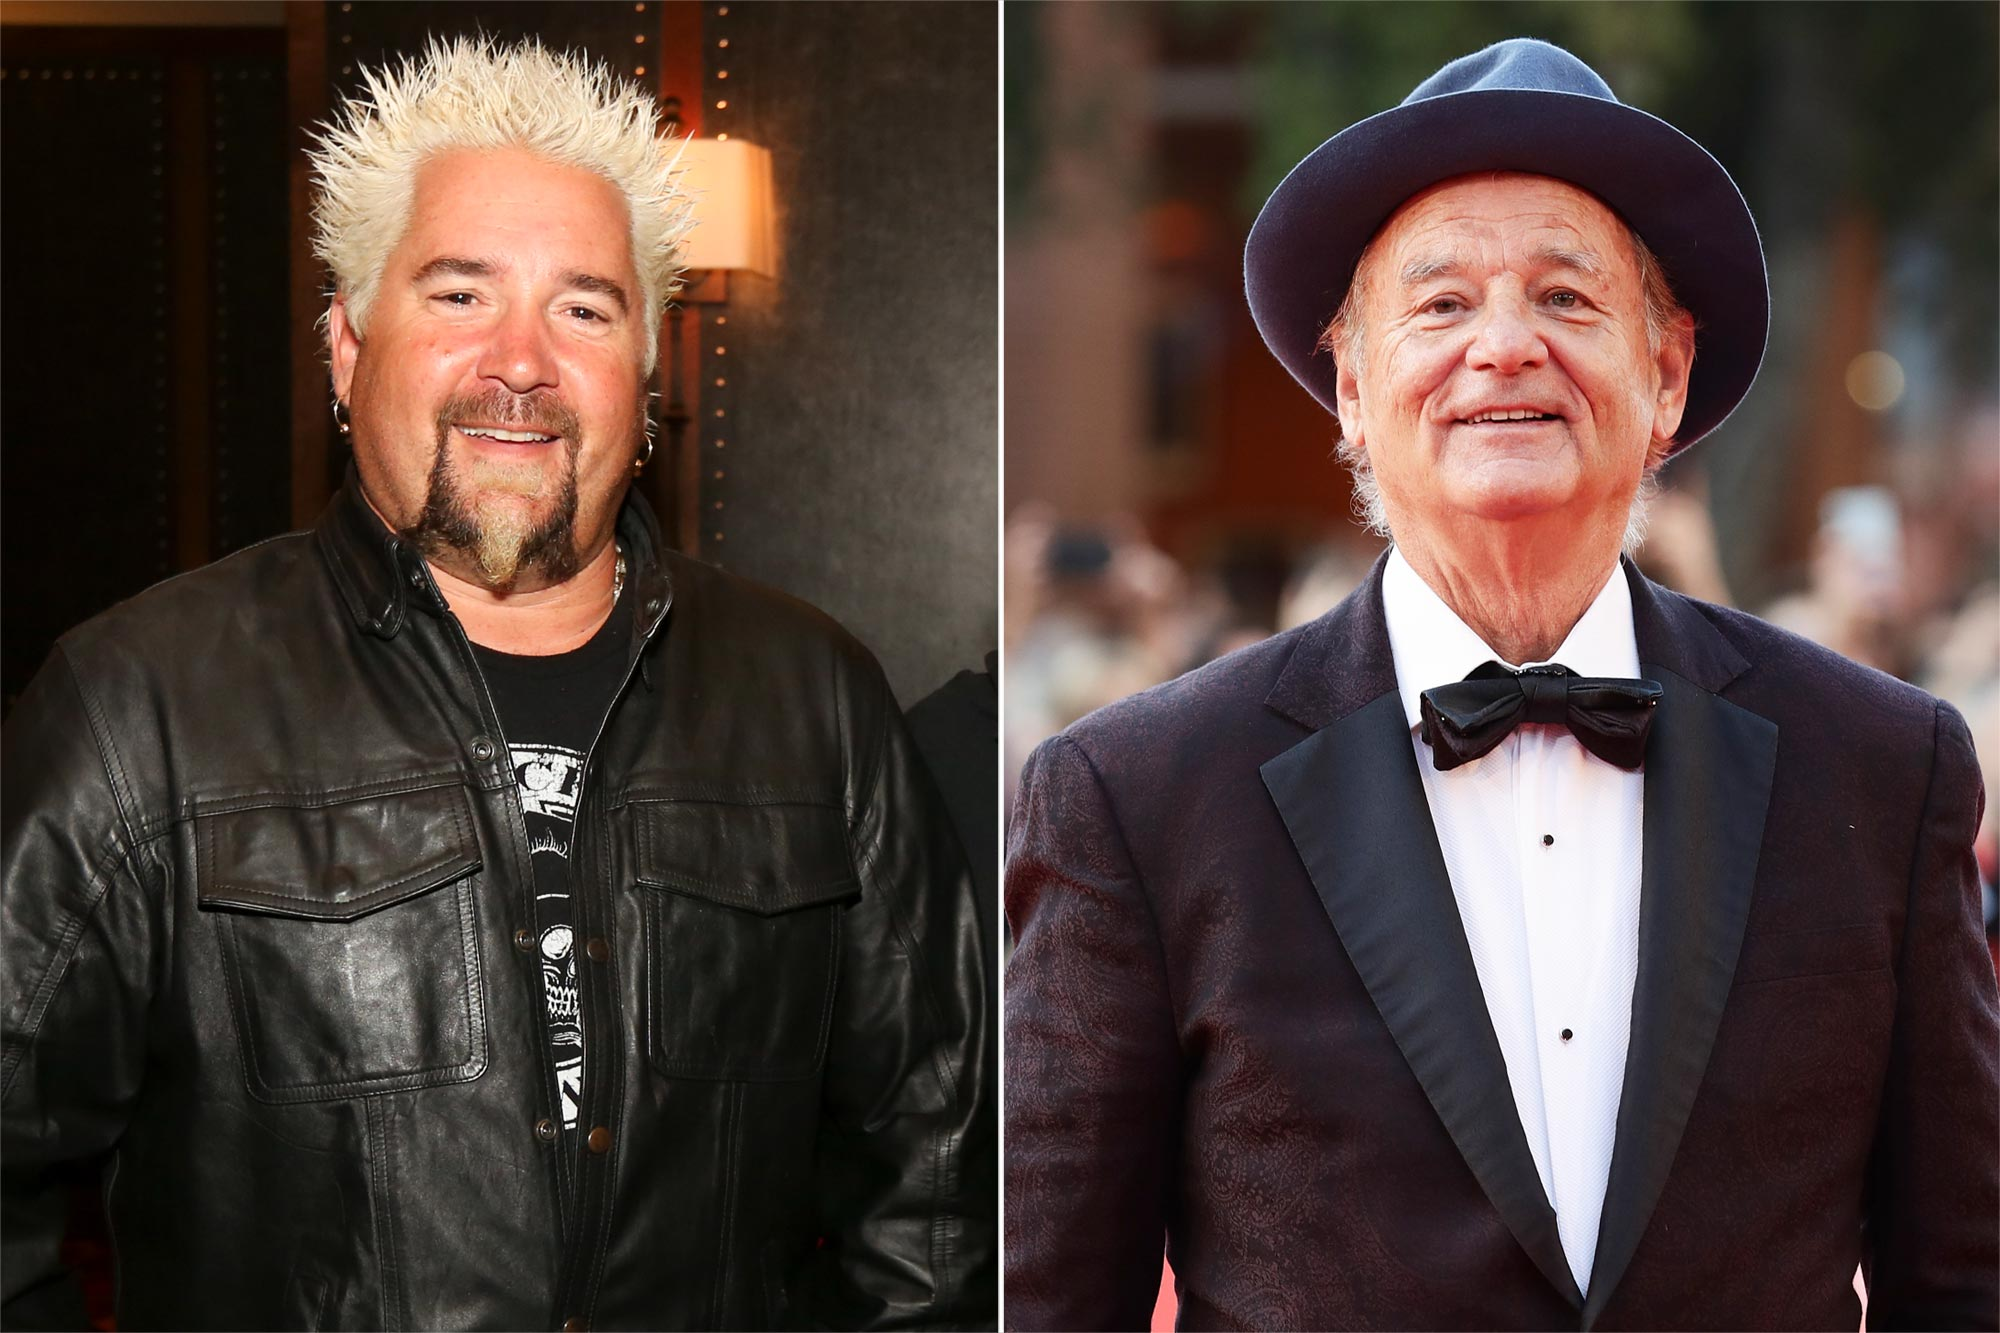 Guy Fieri and Bill Murray